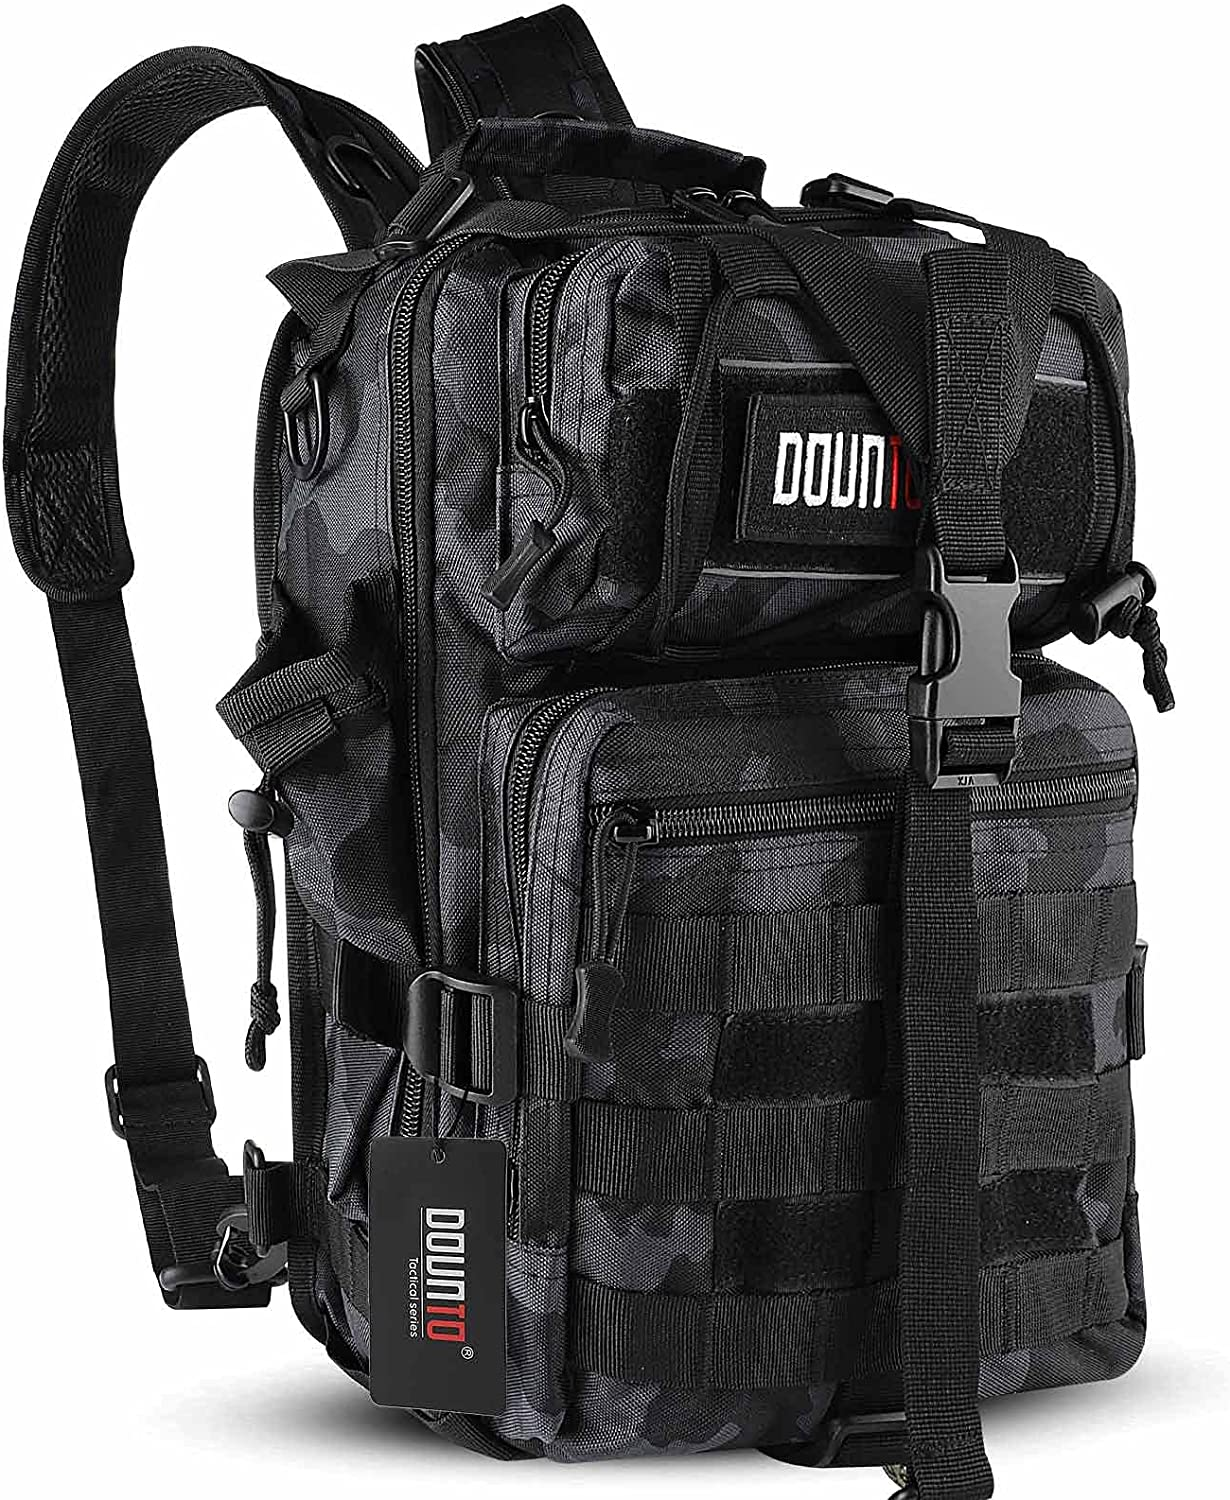 DOUNTO Tactical Fashion Ranking TOP15 Backpack Medium EDC Military DayPack Backp Molle